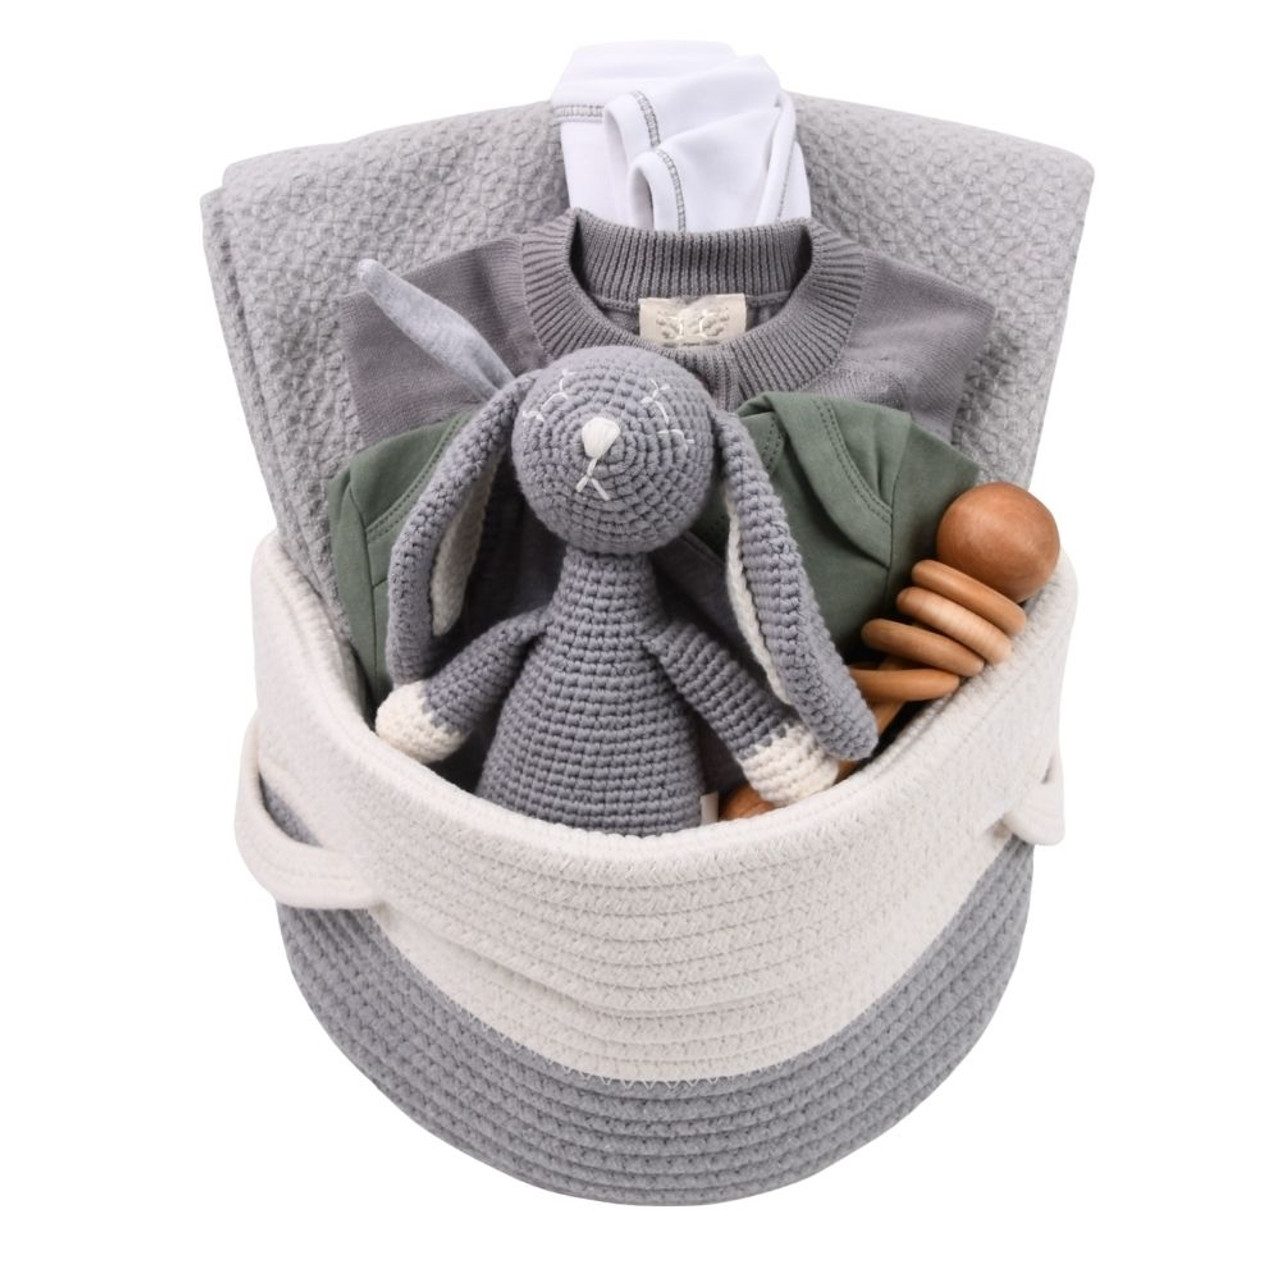 High End Baby Gifts - Sage & Grey